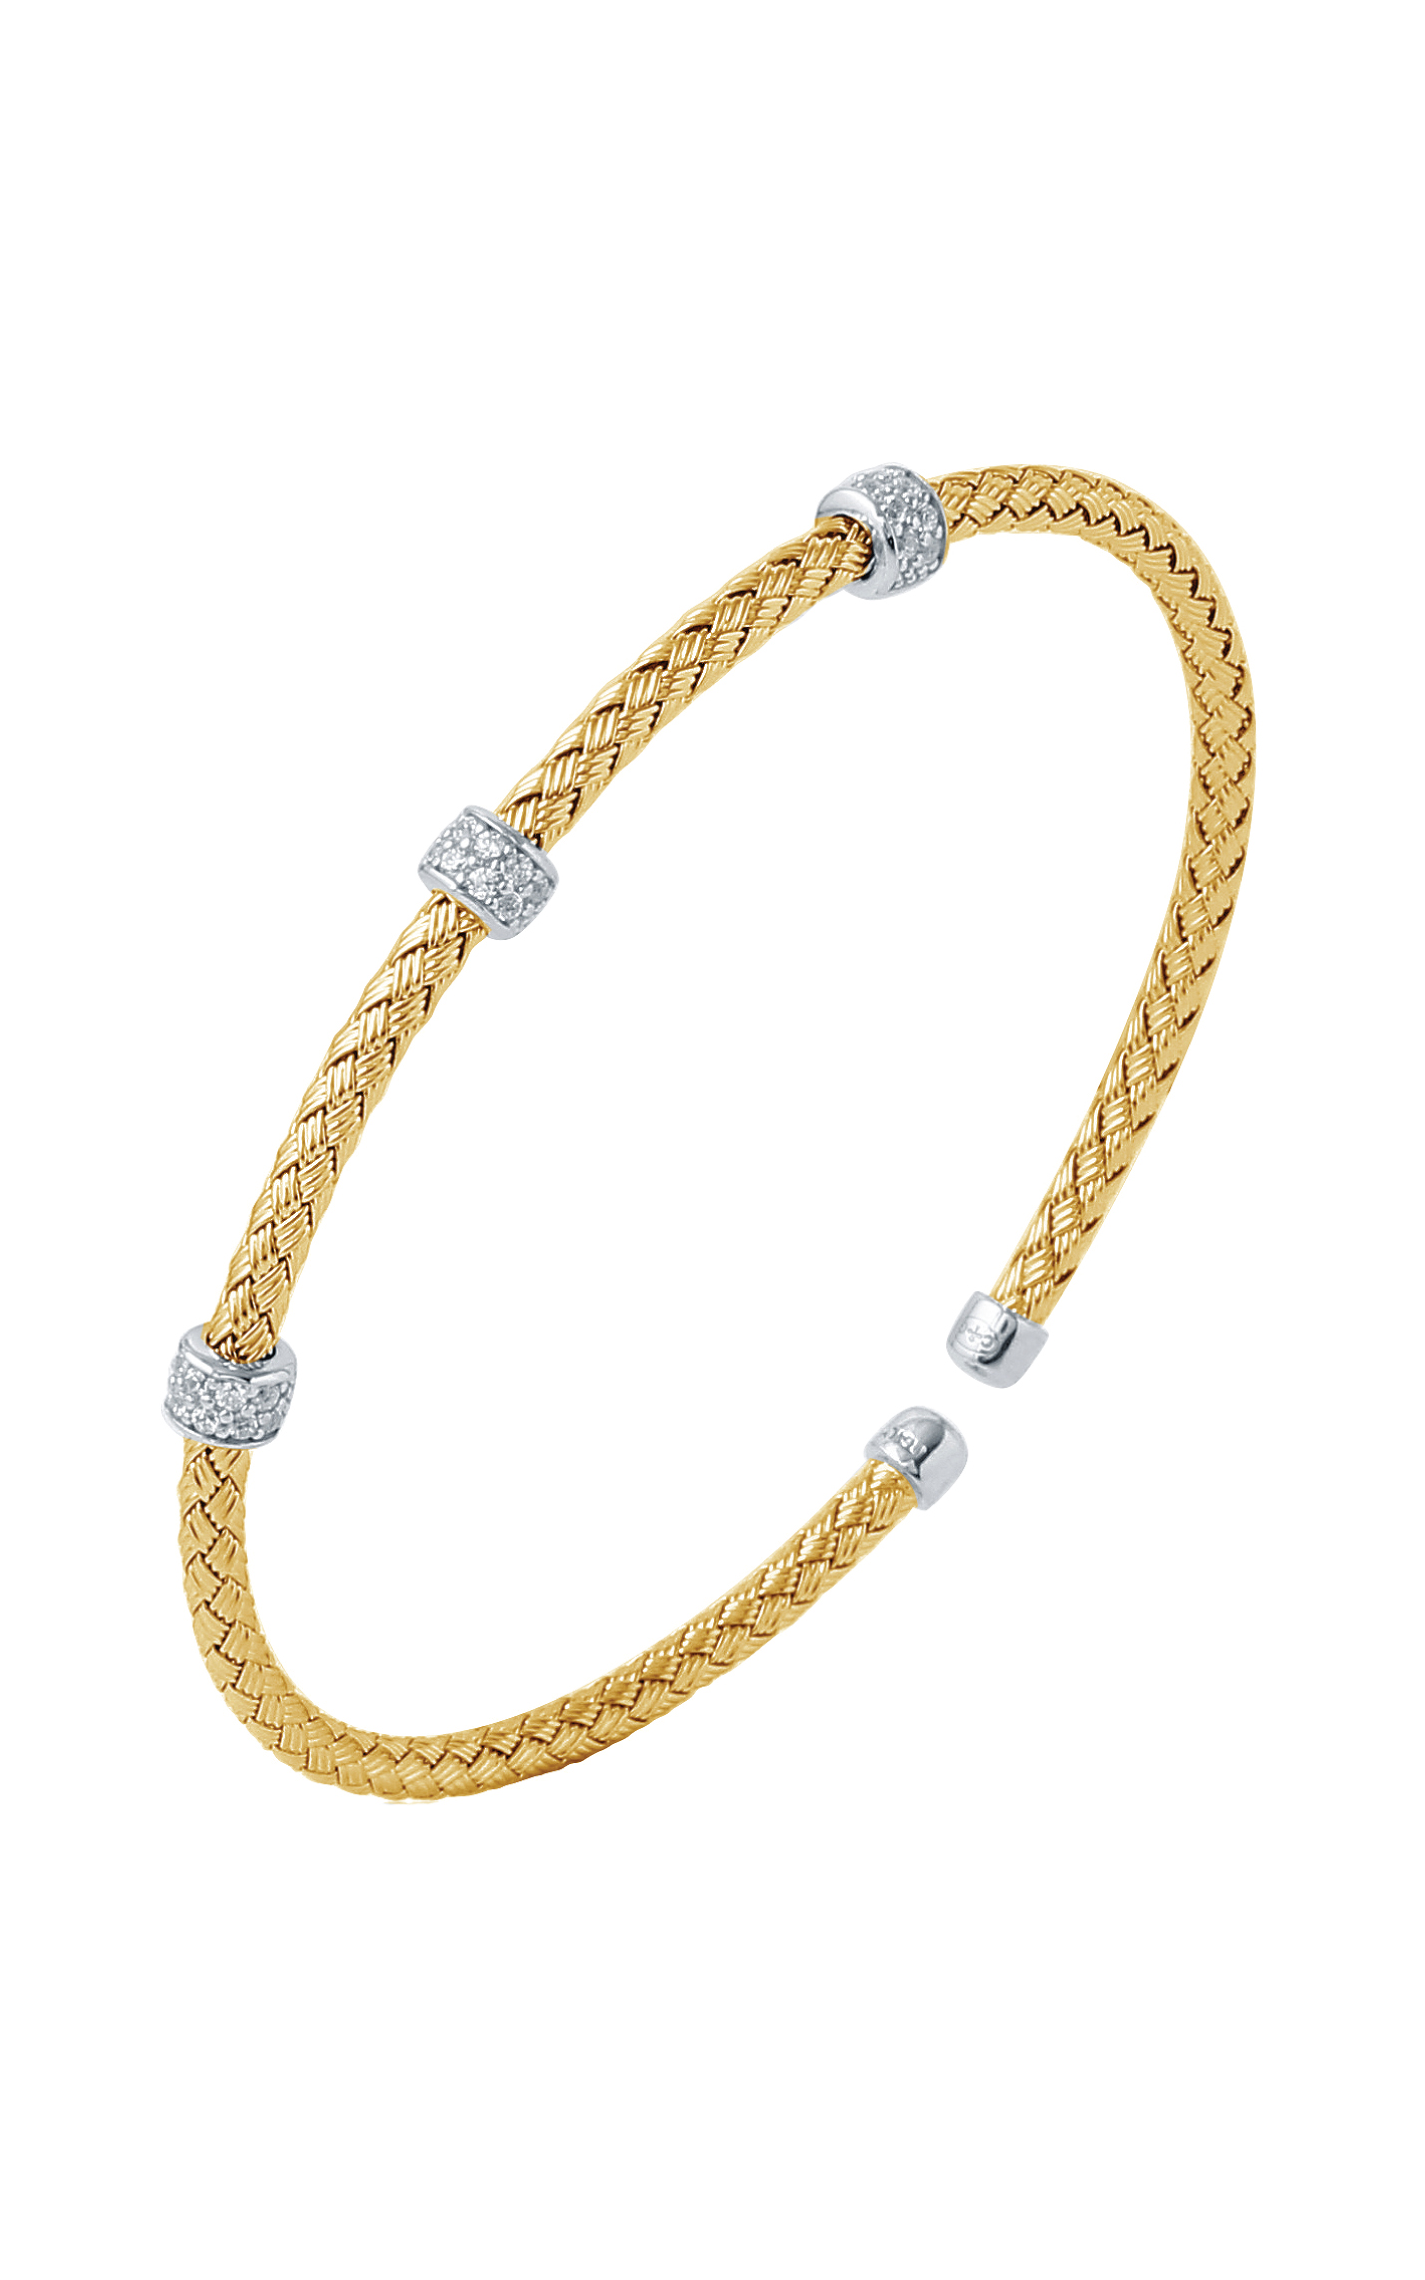 Charles Garnier Bracelets Bracelet Paolo Collection MLC8109YWZ product image